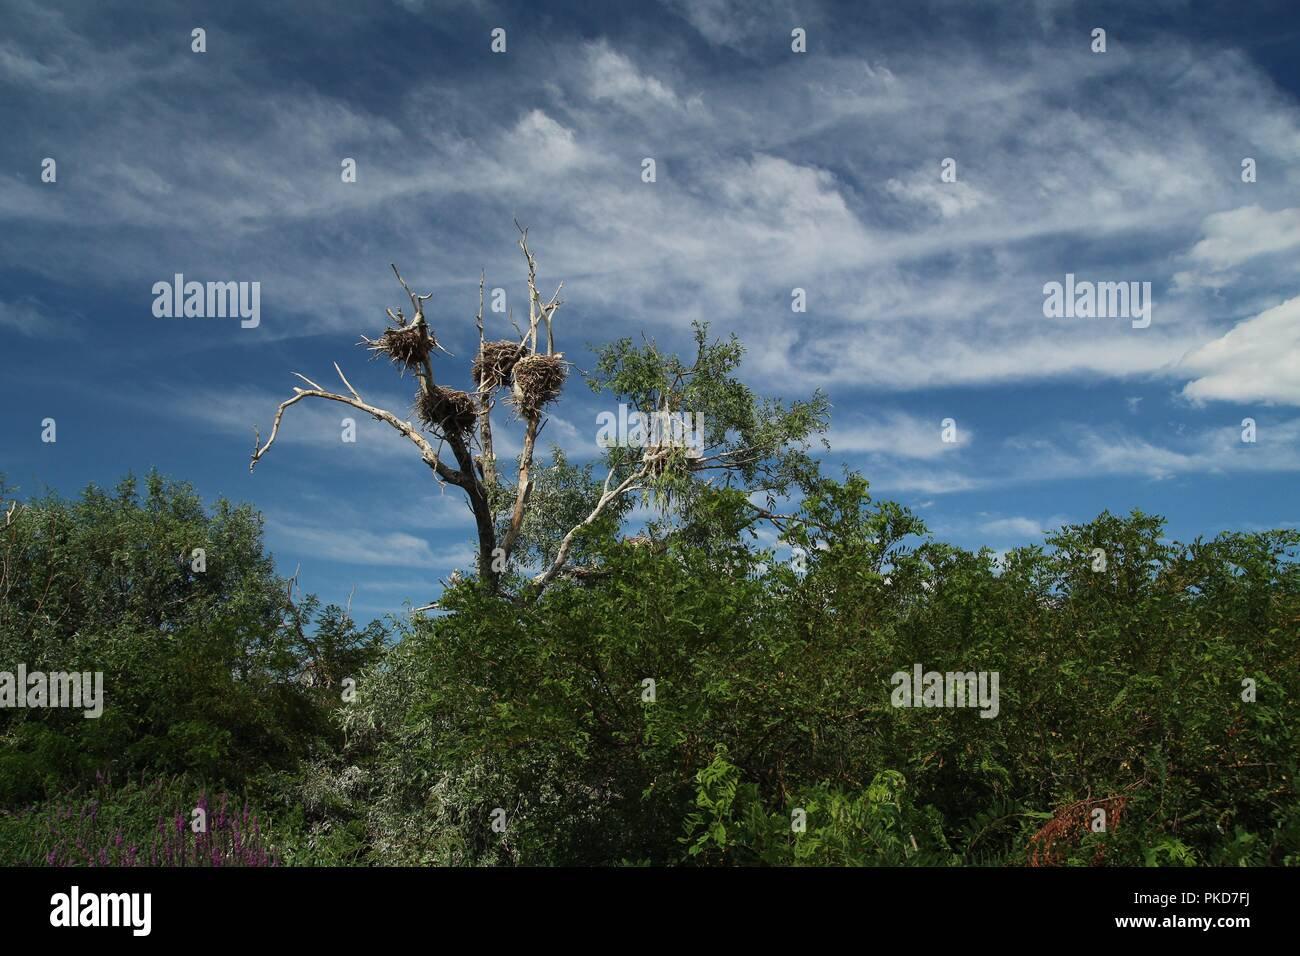 Dead tree with bird nests. - Stock Image